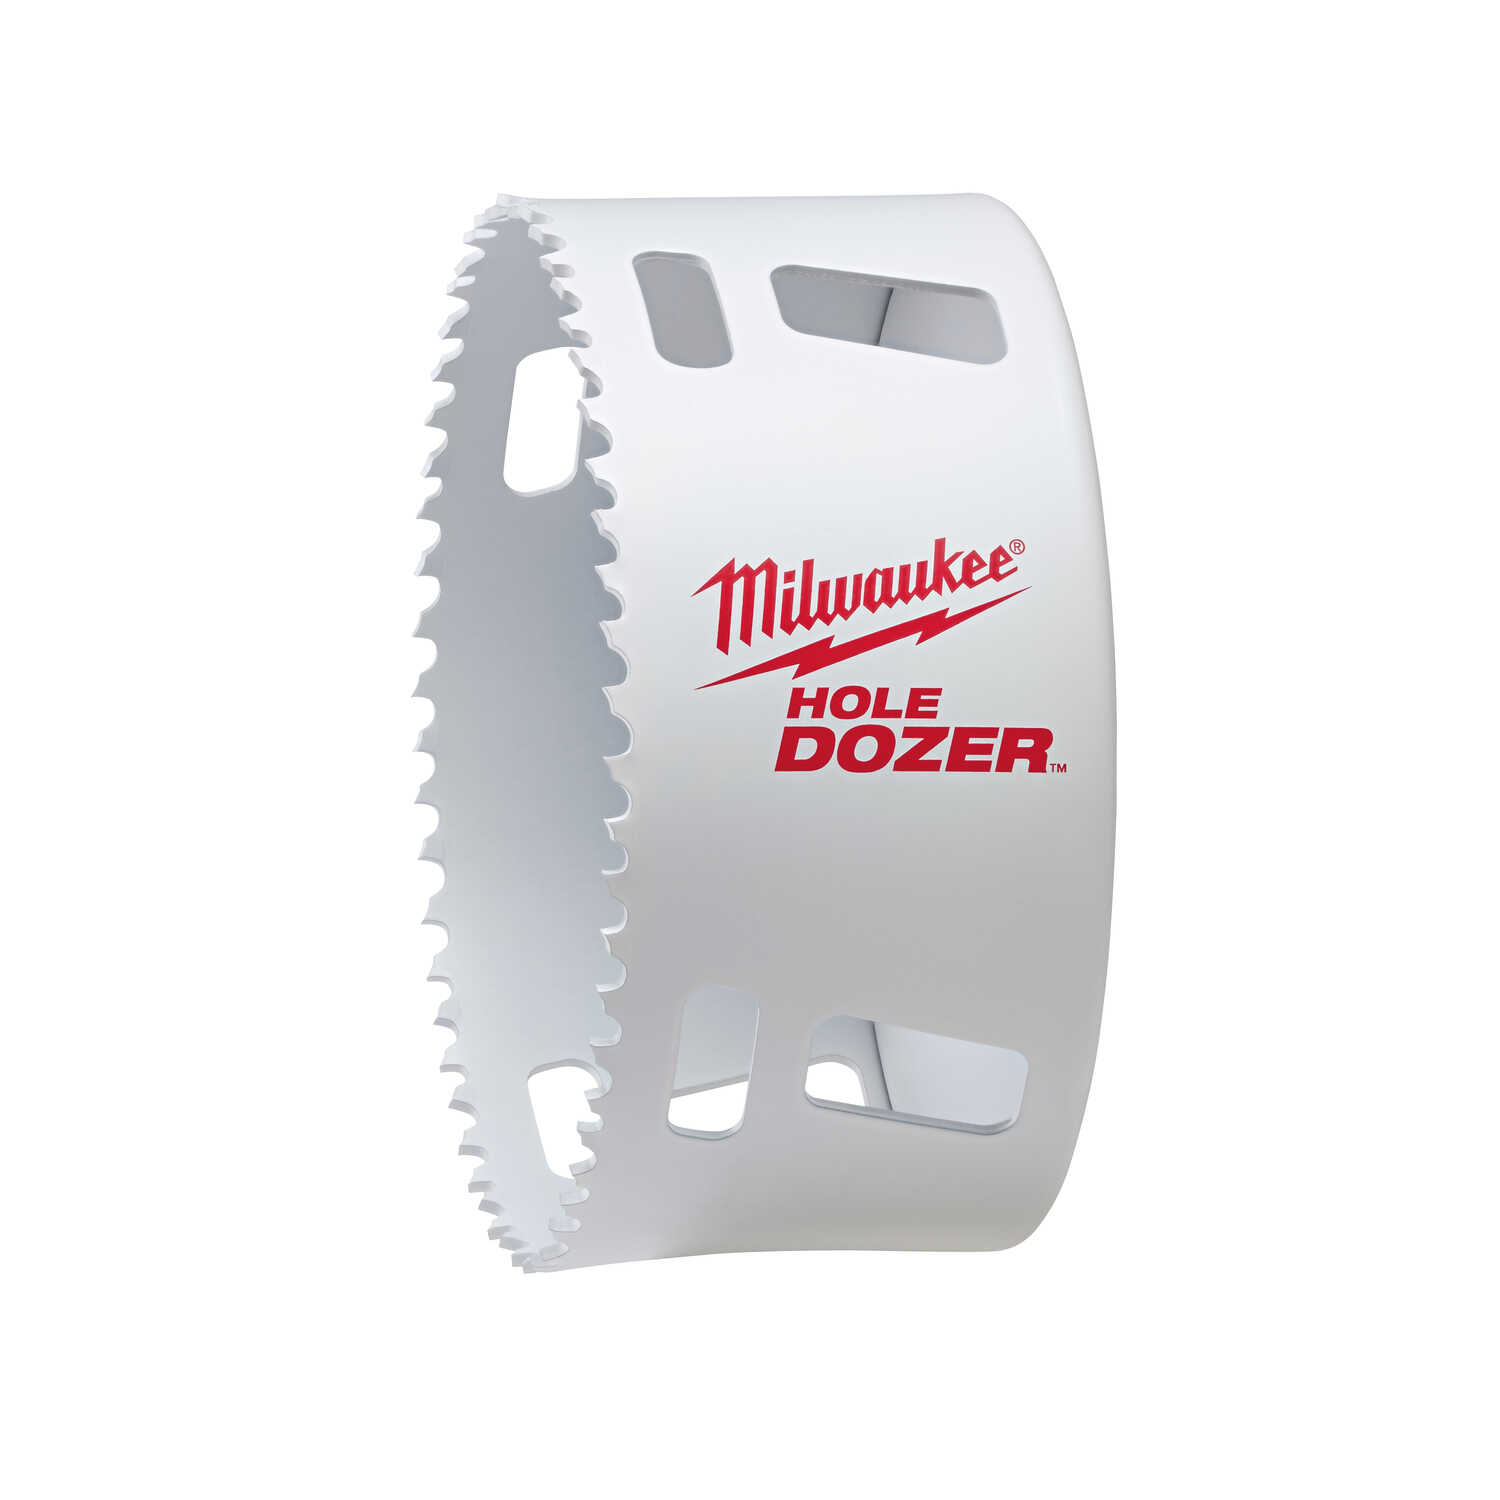 Milwaukee  Hole Dozer  4-1/2 in. Dia. x 2.6 in. L Bi-Metal  Hole Saw  1/4 in. 1 pc.